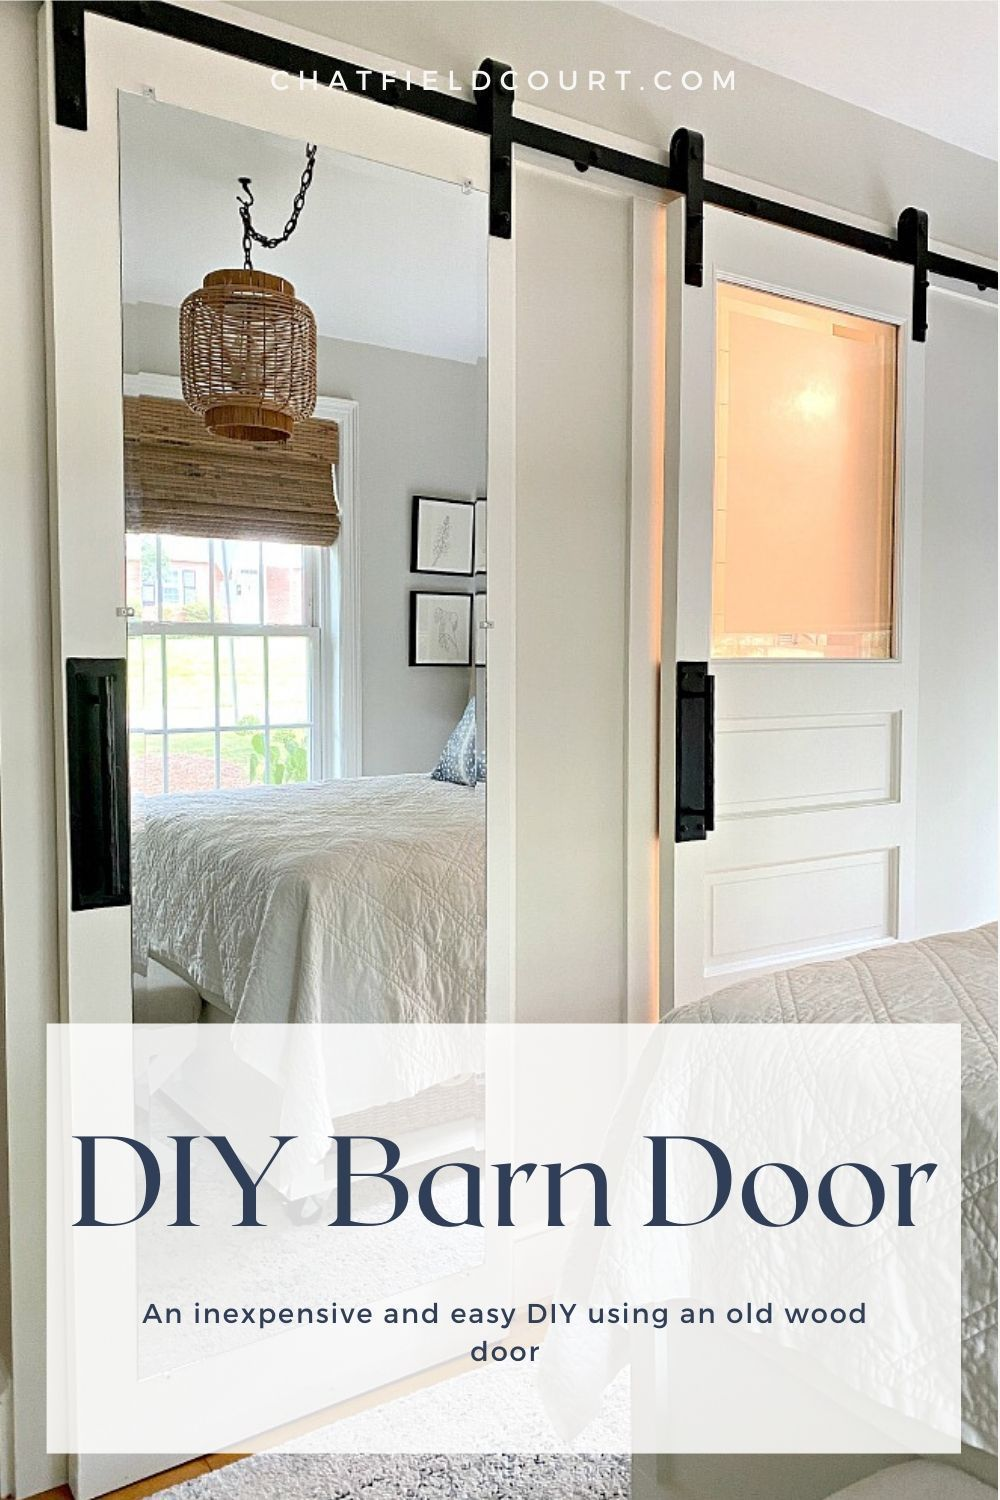 How to make a DIY mirrored barn door for a small closet in a guest bedroom with an old wood closet door and framed leaning mirror.